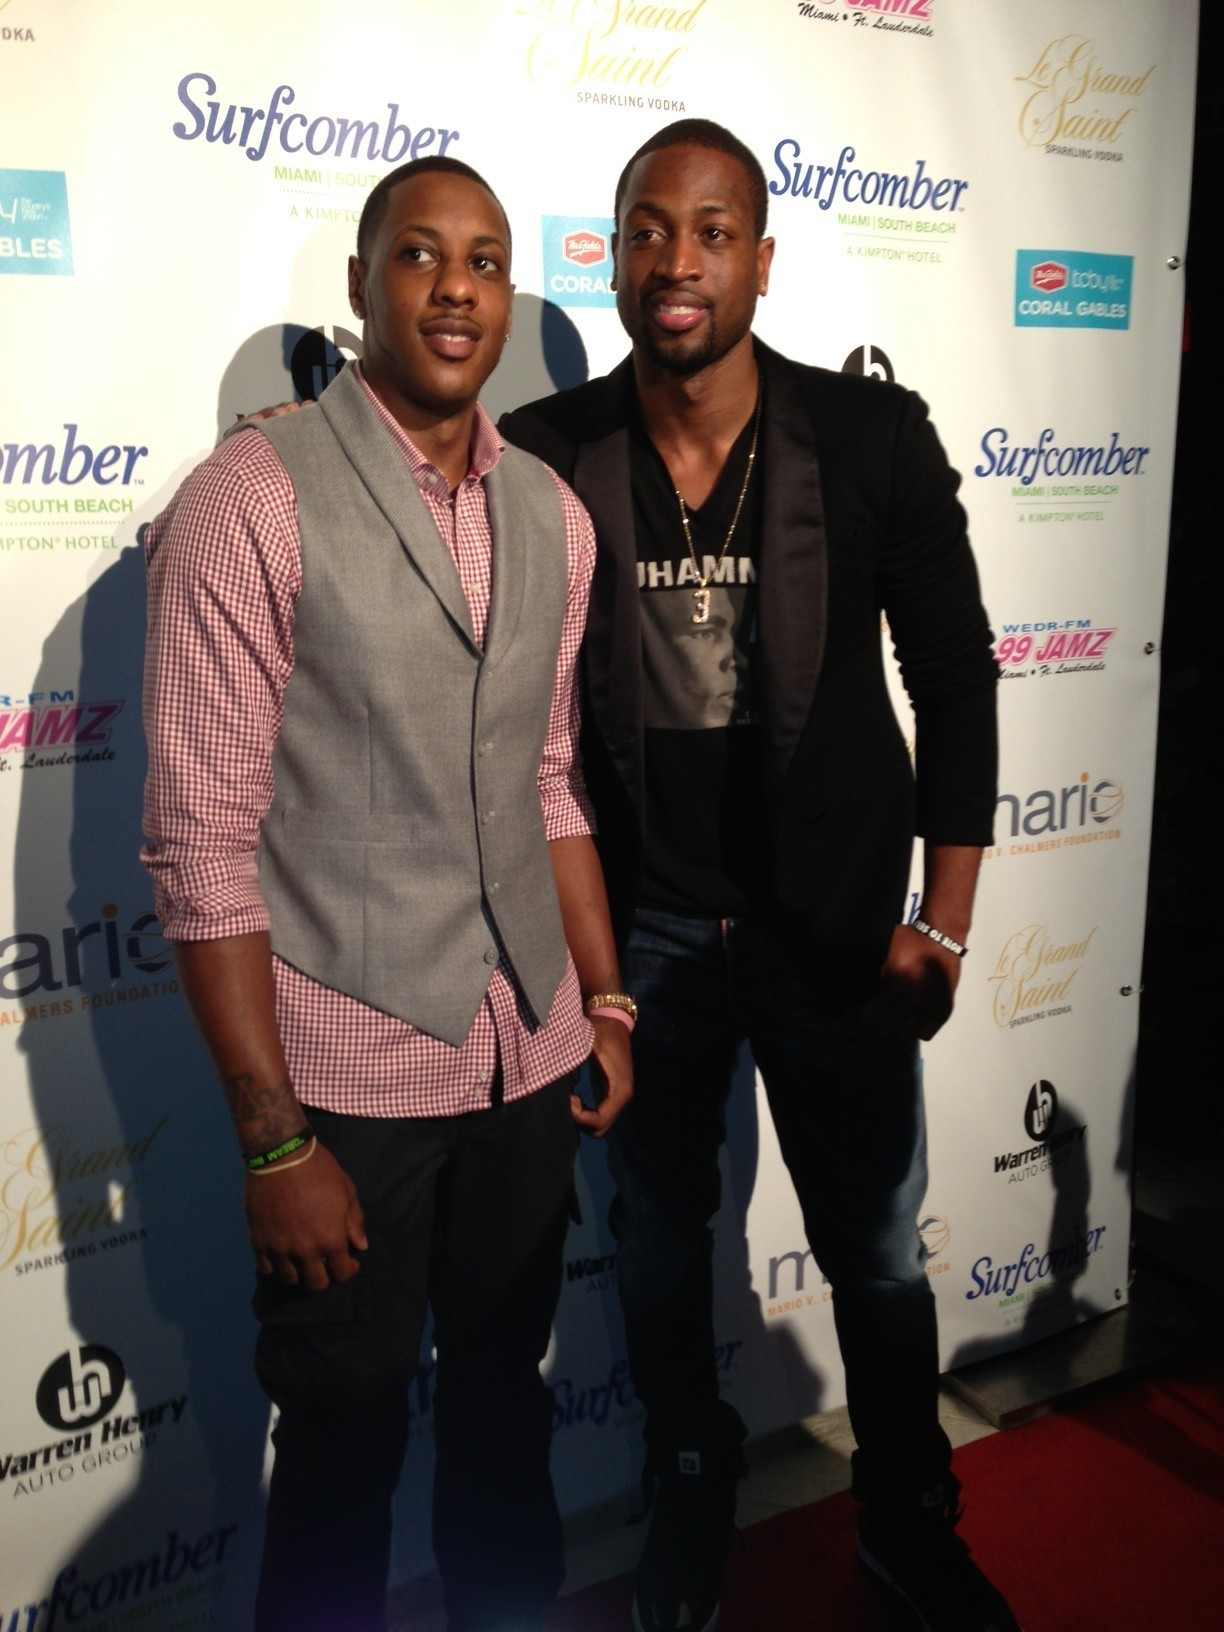 Celeb-spotting around South Florida - Mario Chalmers Foundation fundraiser at the Surfcomber in Miami